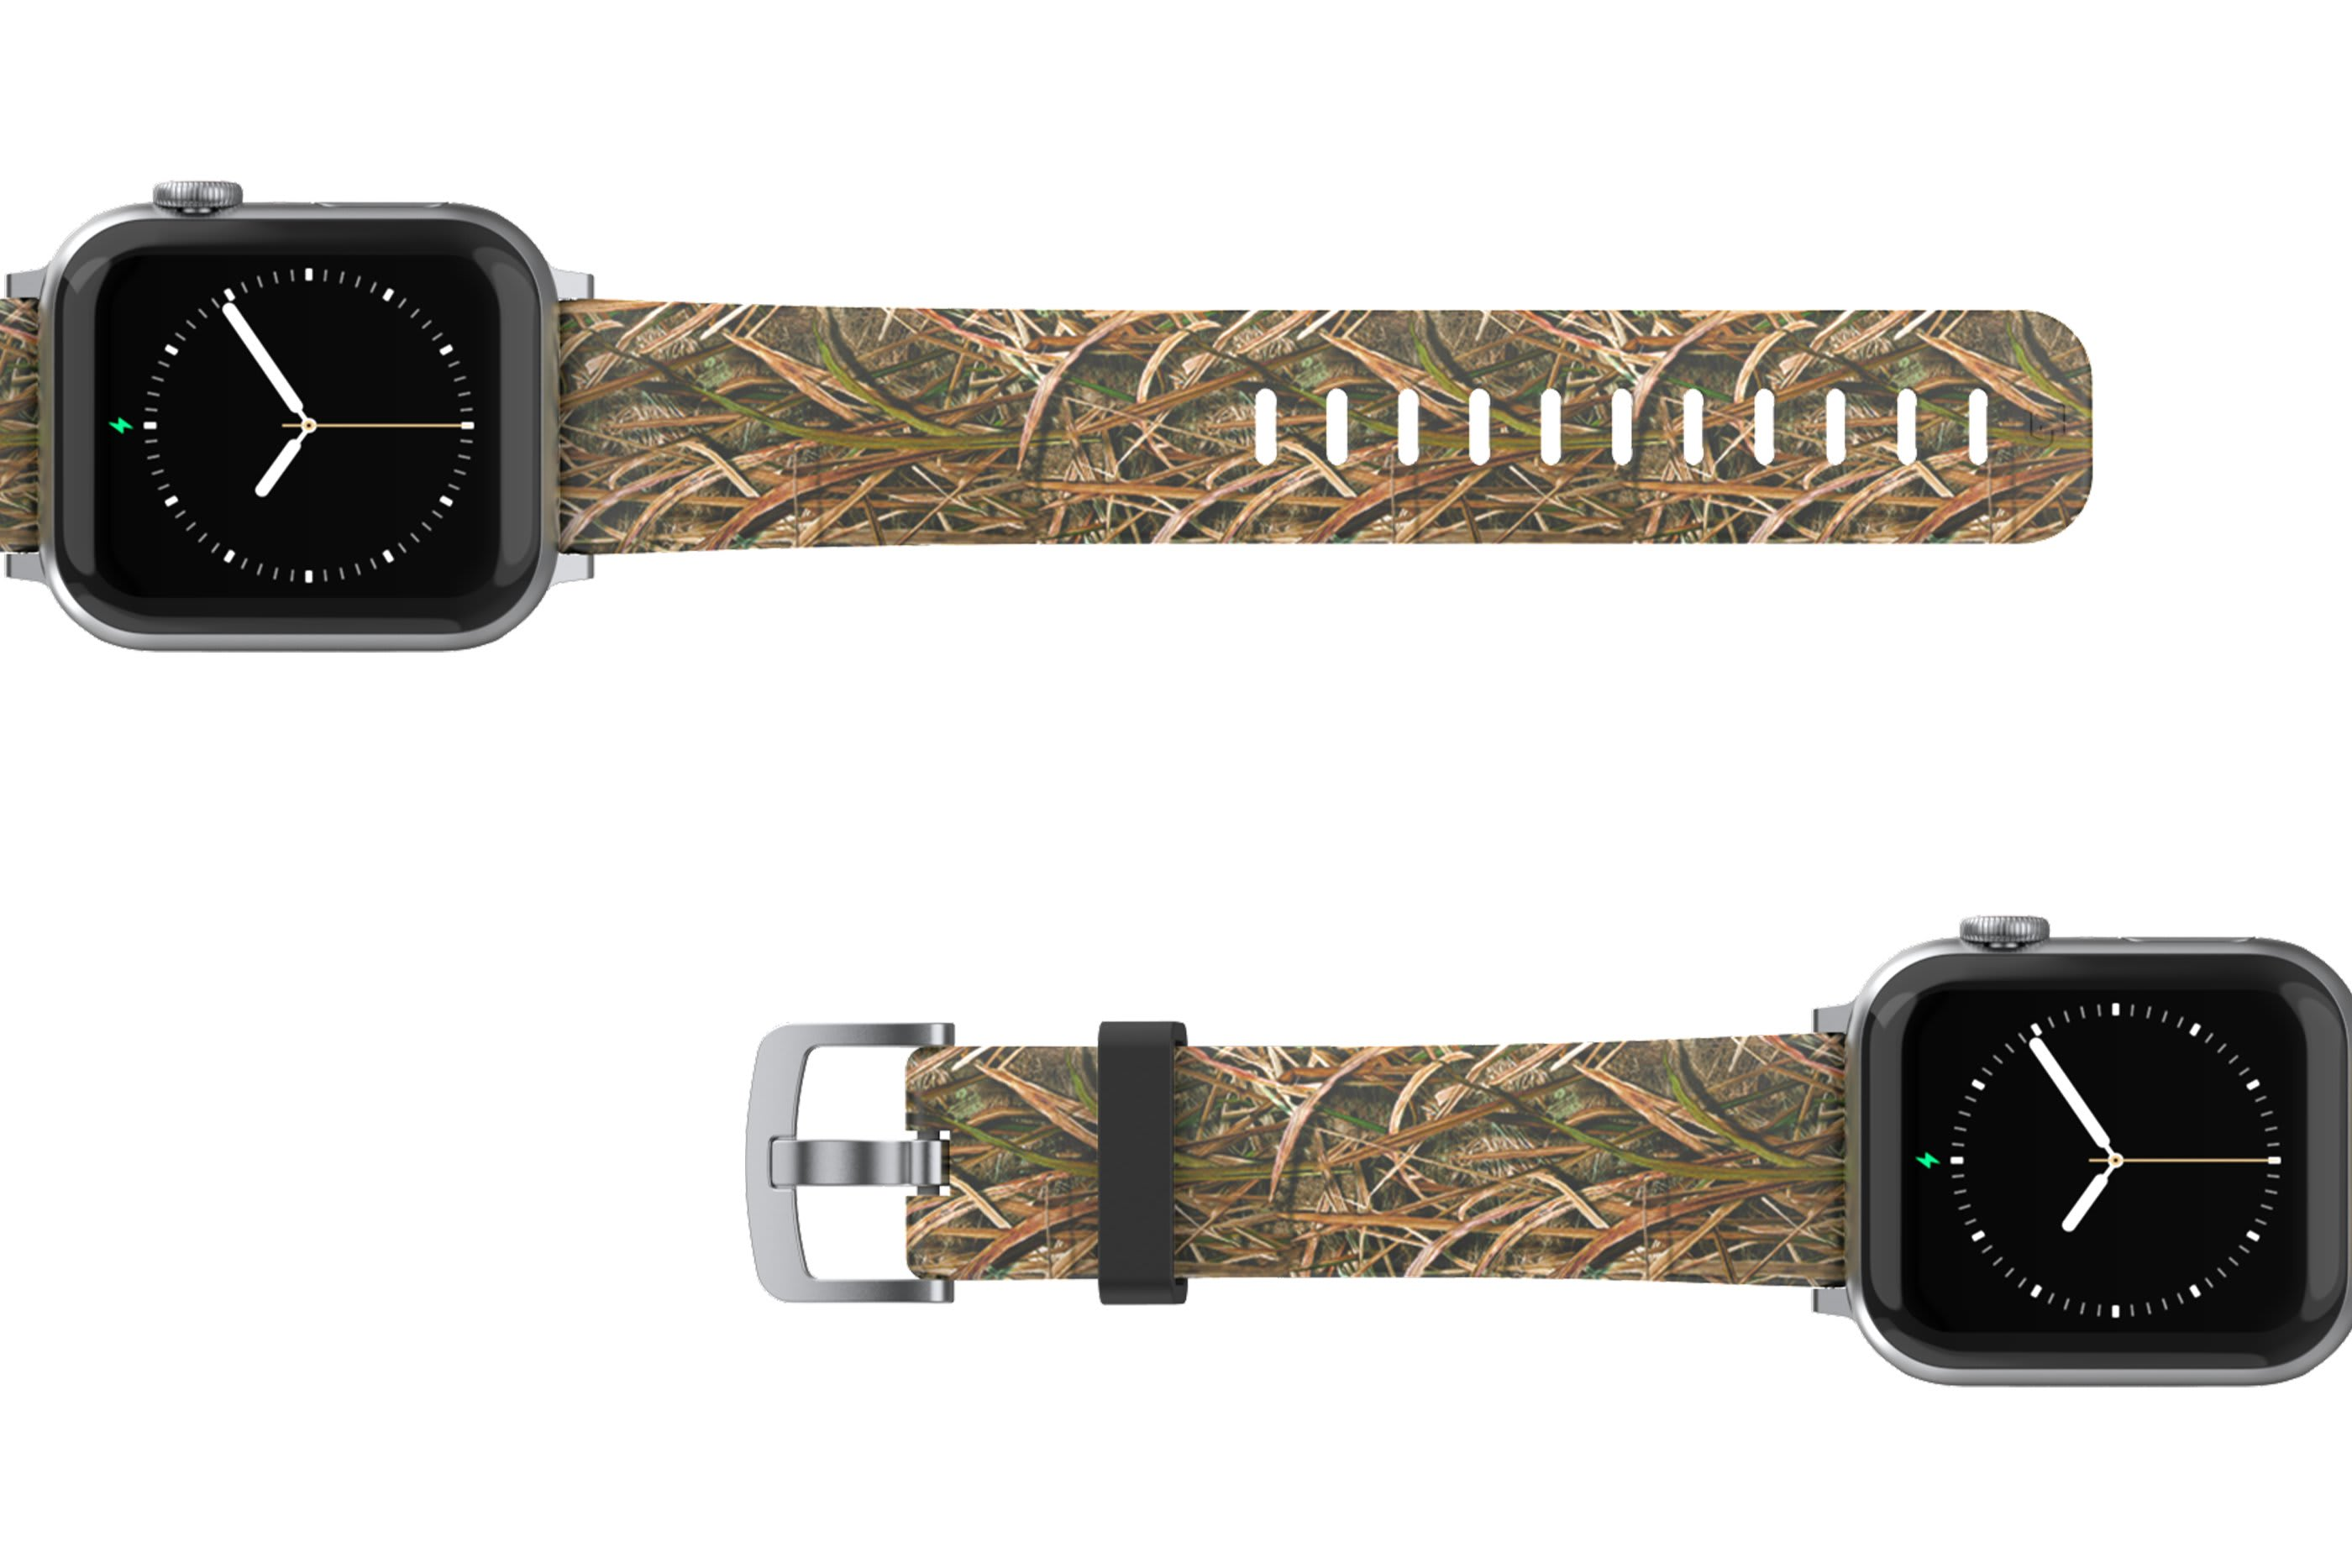 Mossy Oak Blades Apple Watch Band with silver hardware viewed top down